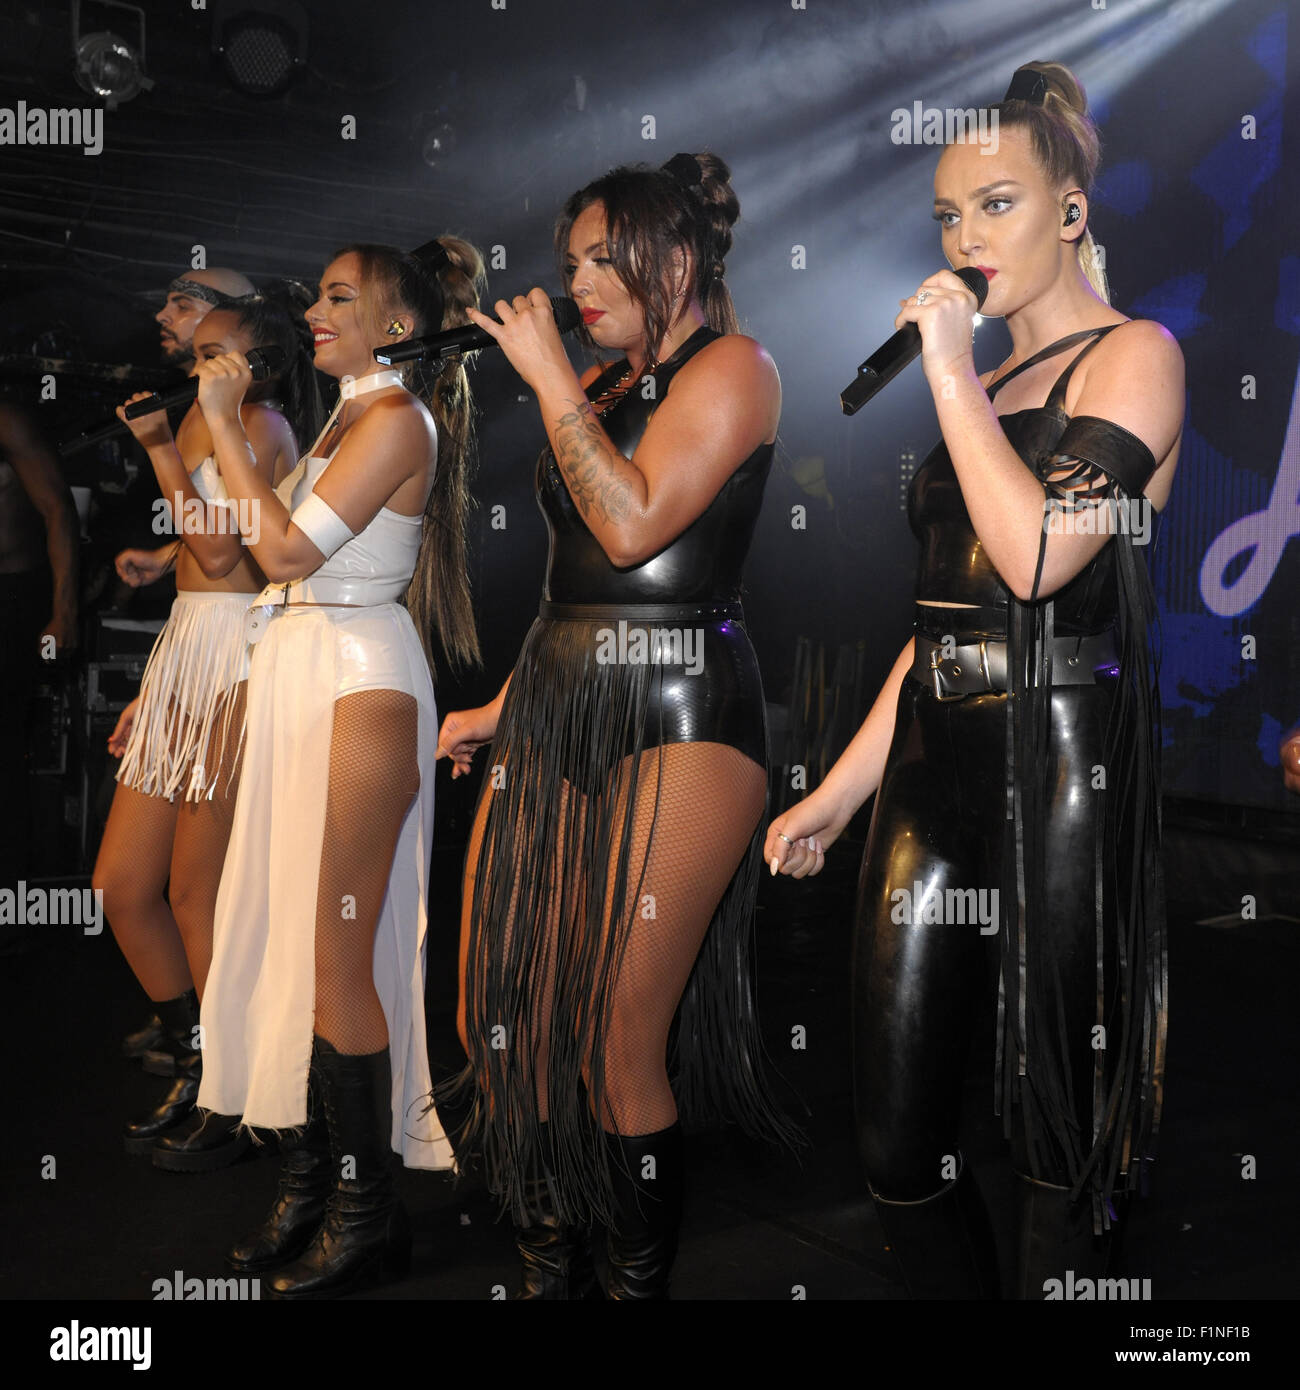 Little Mix perform live at G-A-Y to promote their new single